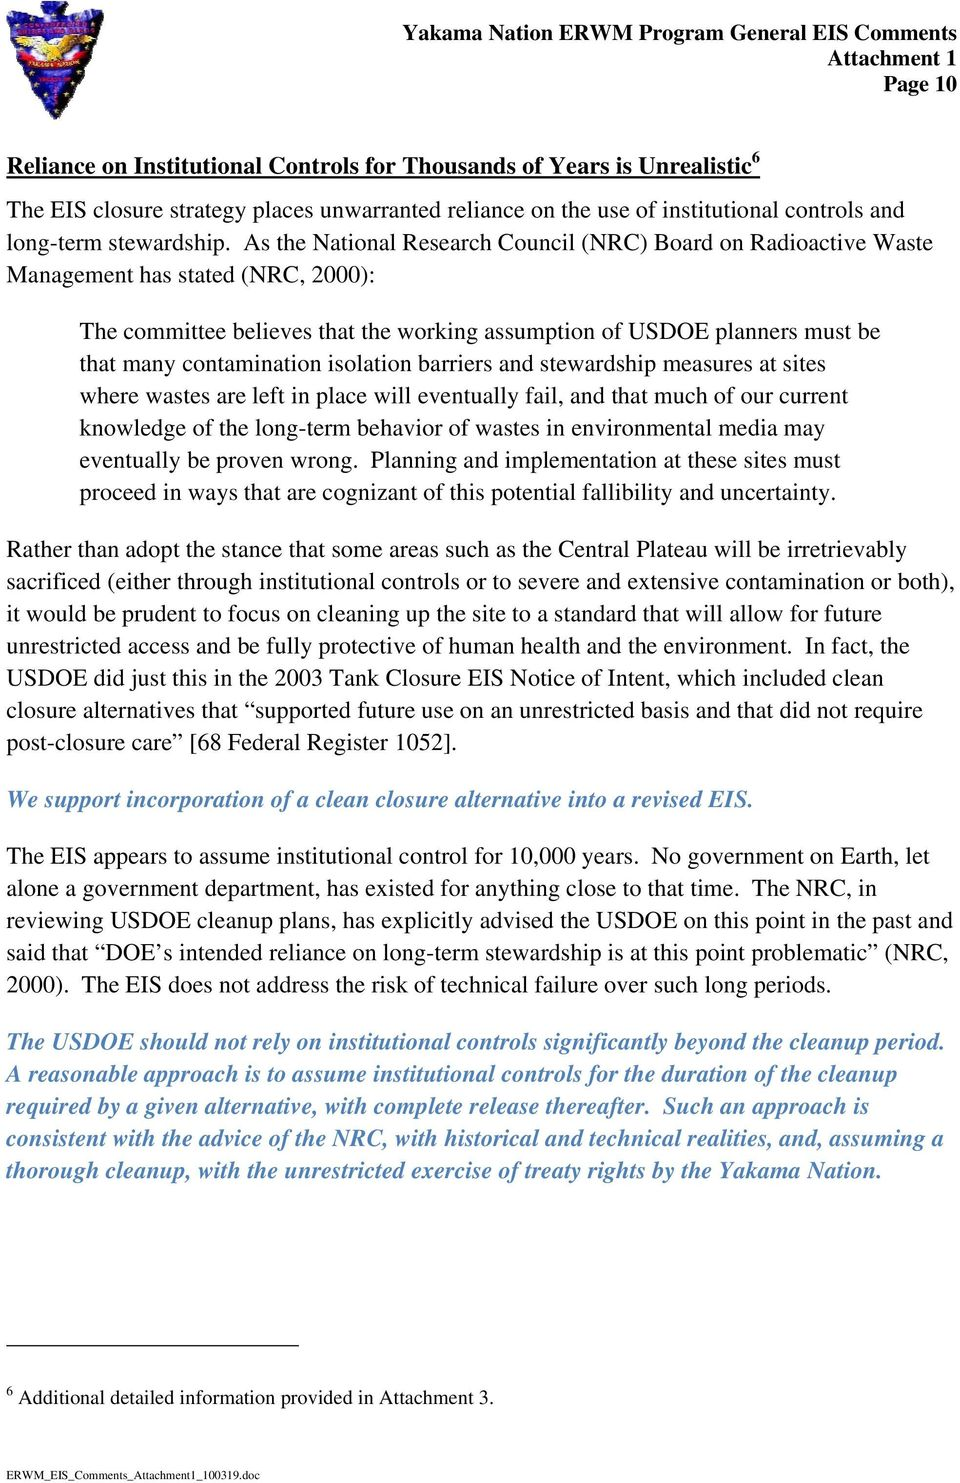 As the National Research Council (NRC) Board on Radioactive Waste Management has stated (NRC, 2000): The committee believes that the working assumption of USDOE planners must be that many